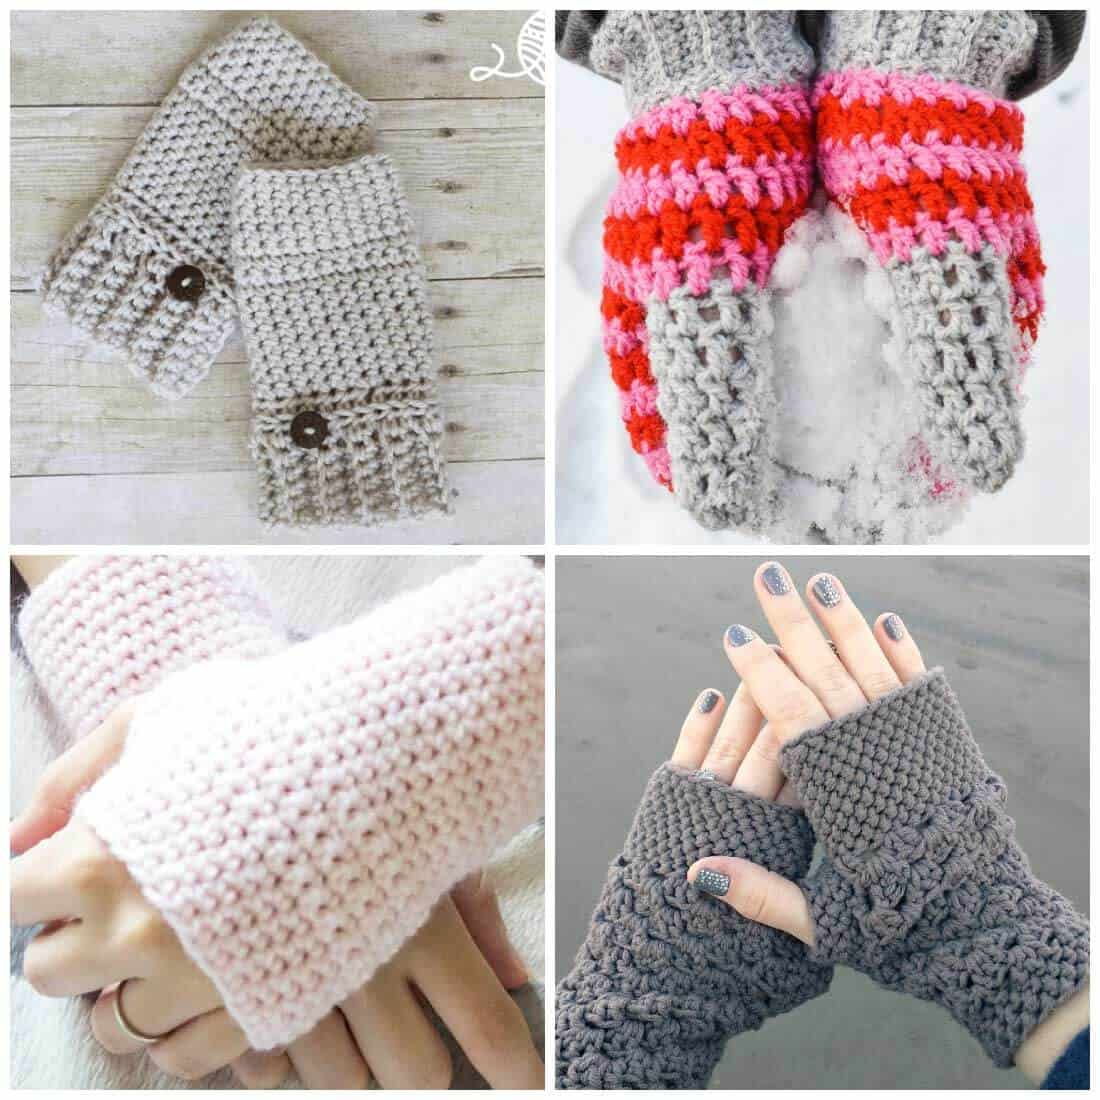 fingerless gloves crochet pattern | crochet mittens | crochet gloves | free crochet patterns | Use these crochet patterns to make a set of fingerless gloves or mittens. These free crochet patterns will have your fingers nice and toasty in no time!